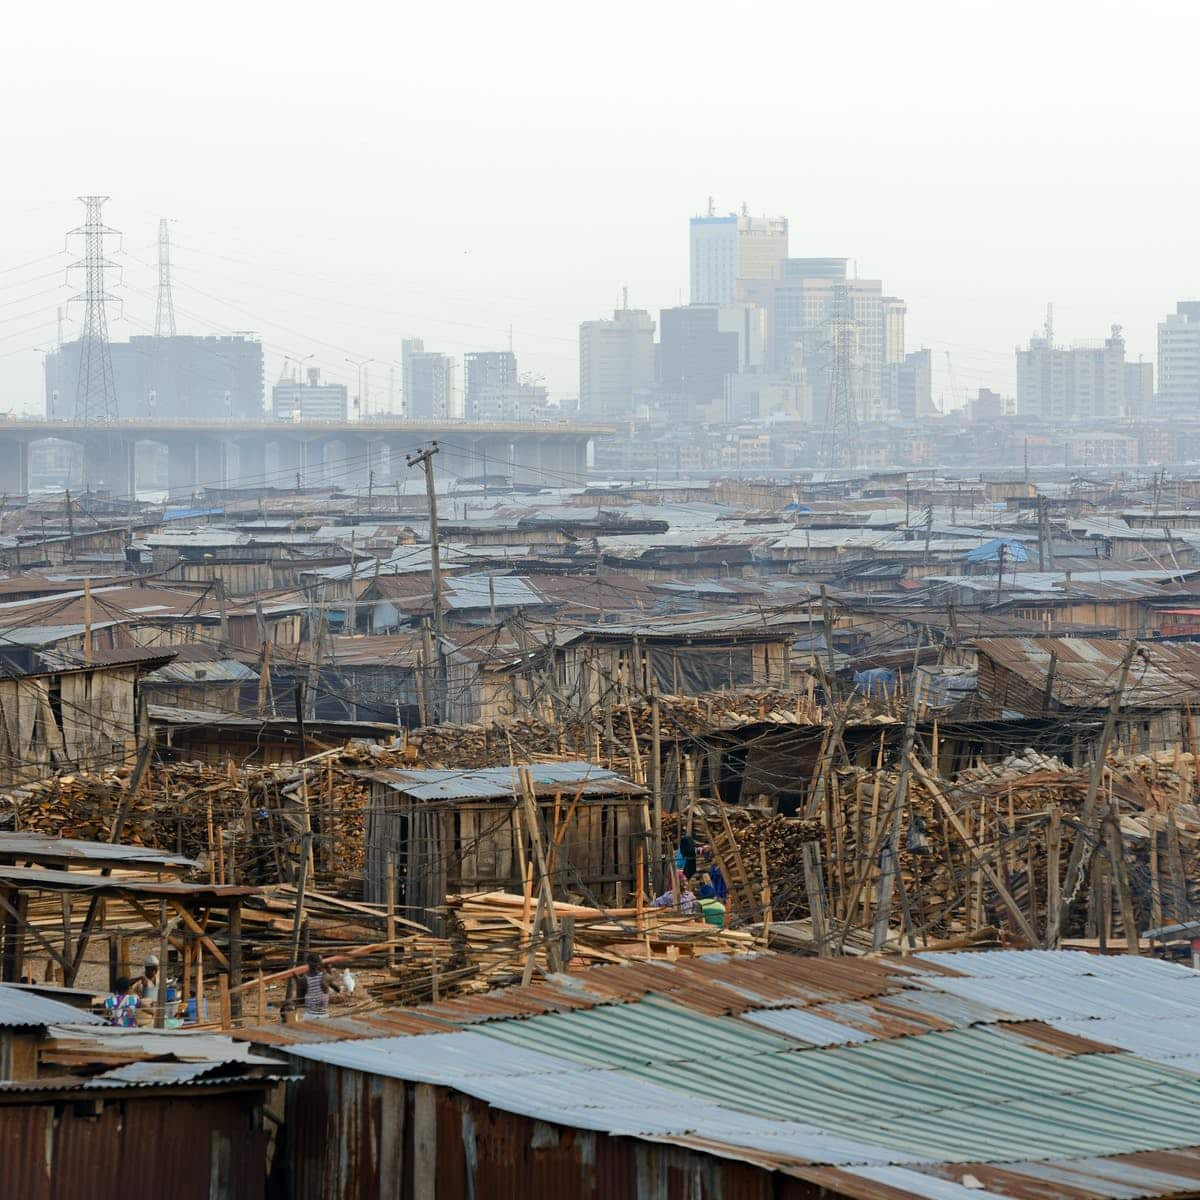 Can COVID-19 inspire a new way of planning African cities? Patrick Brandful Cobbinah, University of Melbourne; Ellis Adjei Adams, University of Notre Dame, and Michael Odei Erdiaw-Kwasie, University of Southern Queensland... https://t.co/7ugawaRttr via @263Chat #Africa #Zimbabwe https://t.co/NqZeOOE4x2